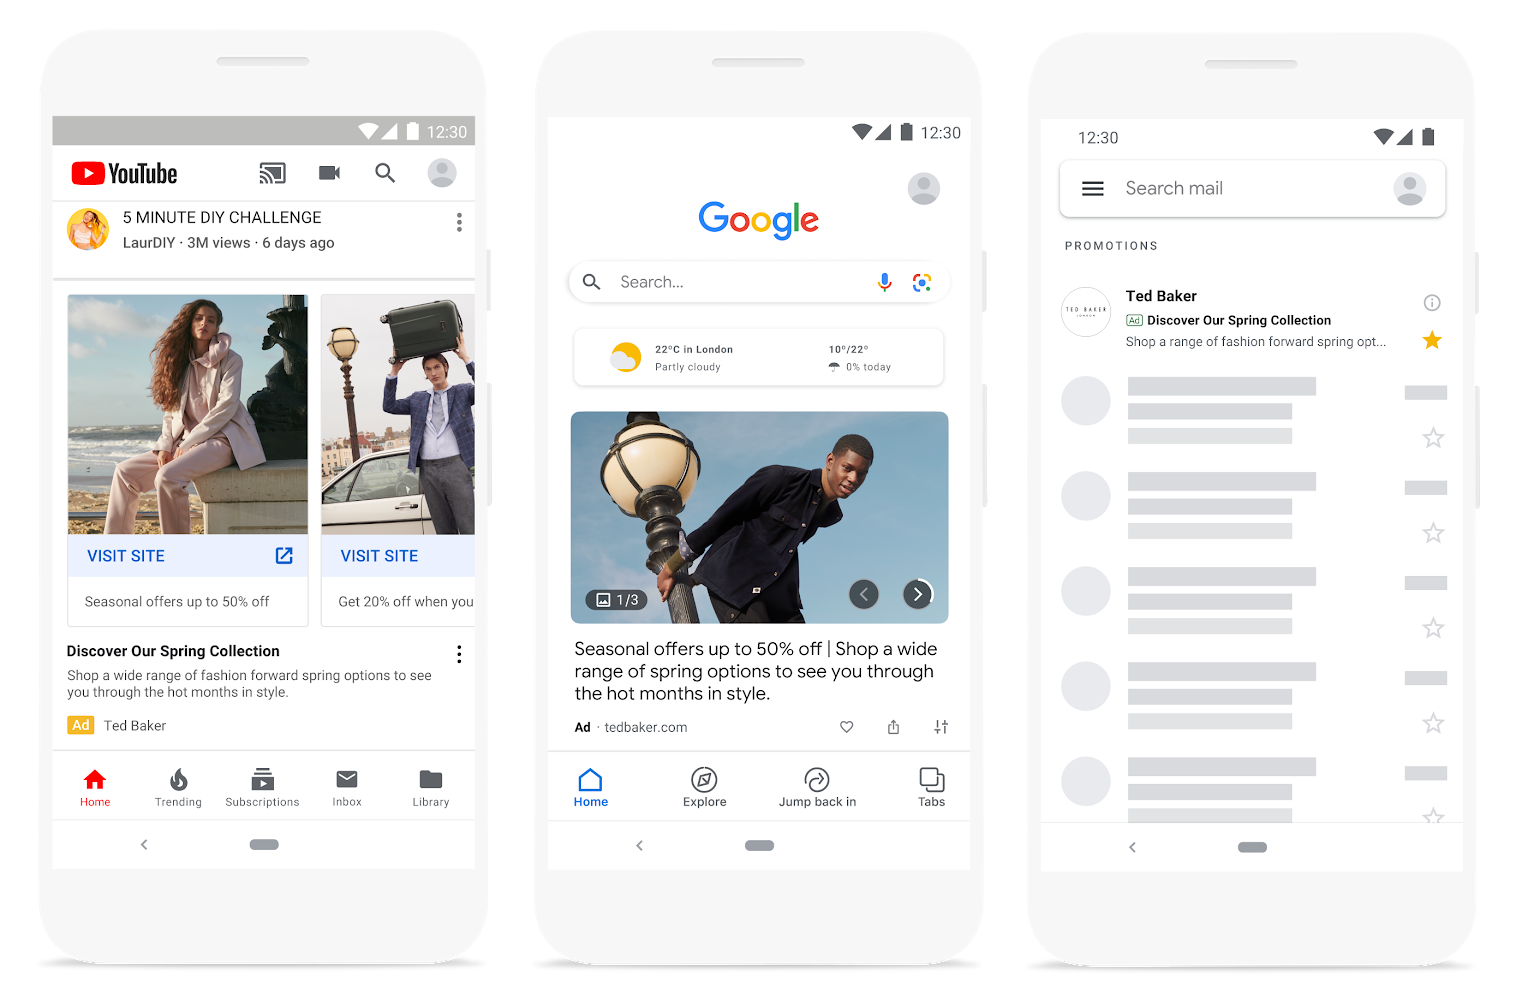 Google Discovery Campaign Tips